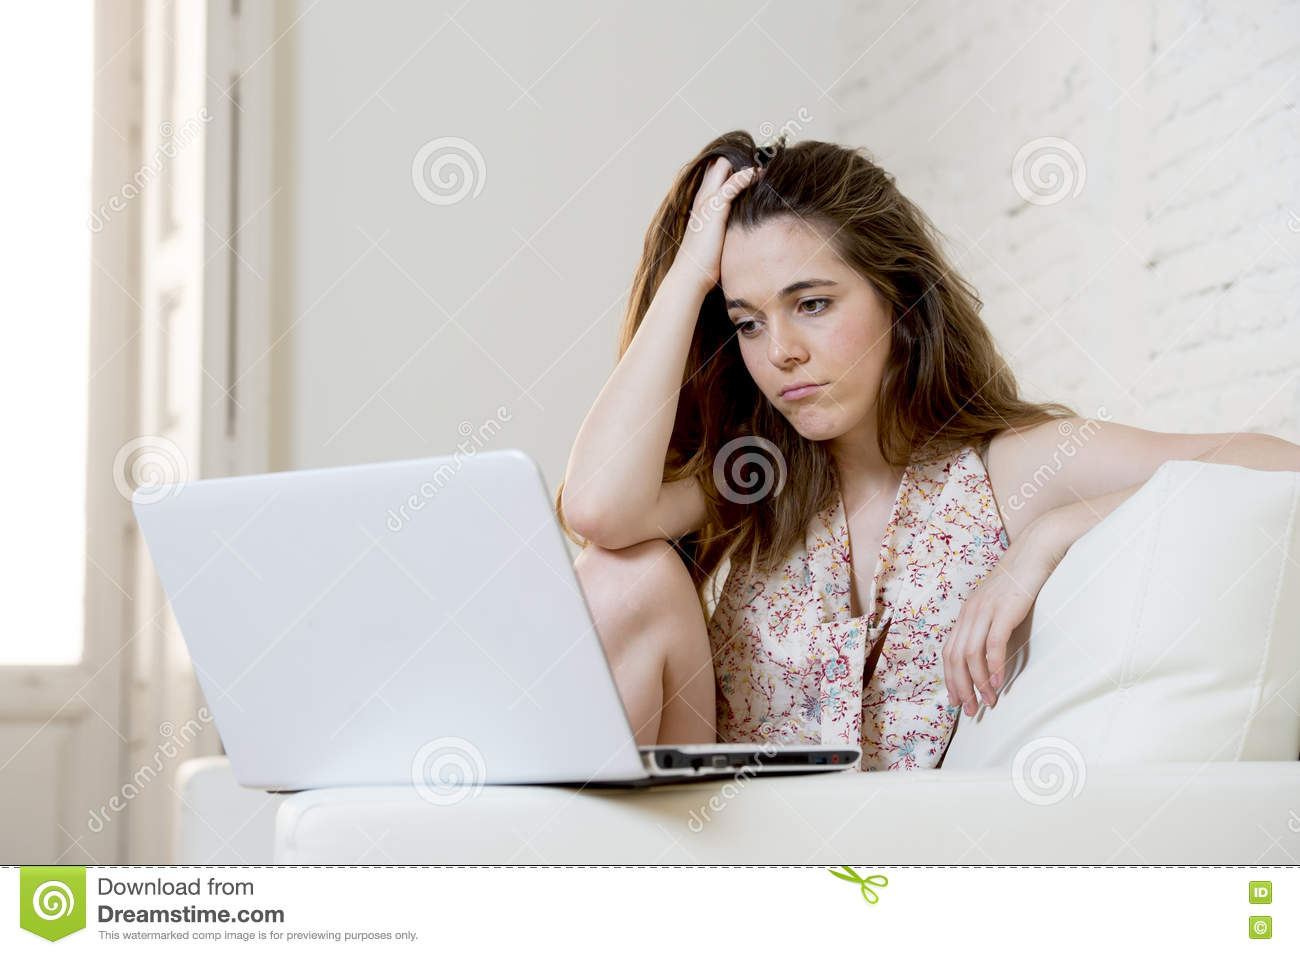 Disappointed girl at home couch using internet for studying with laptop computer